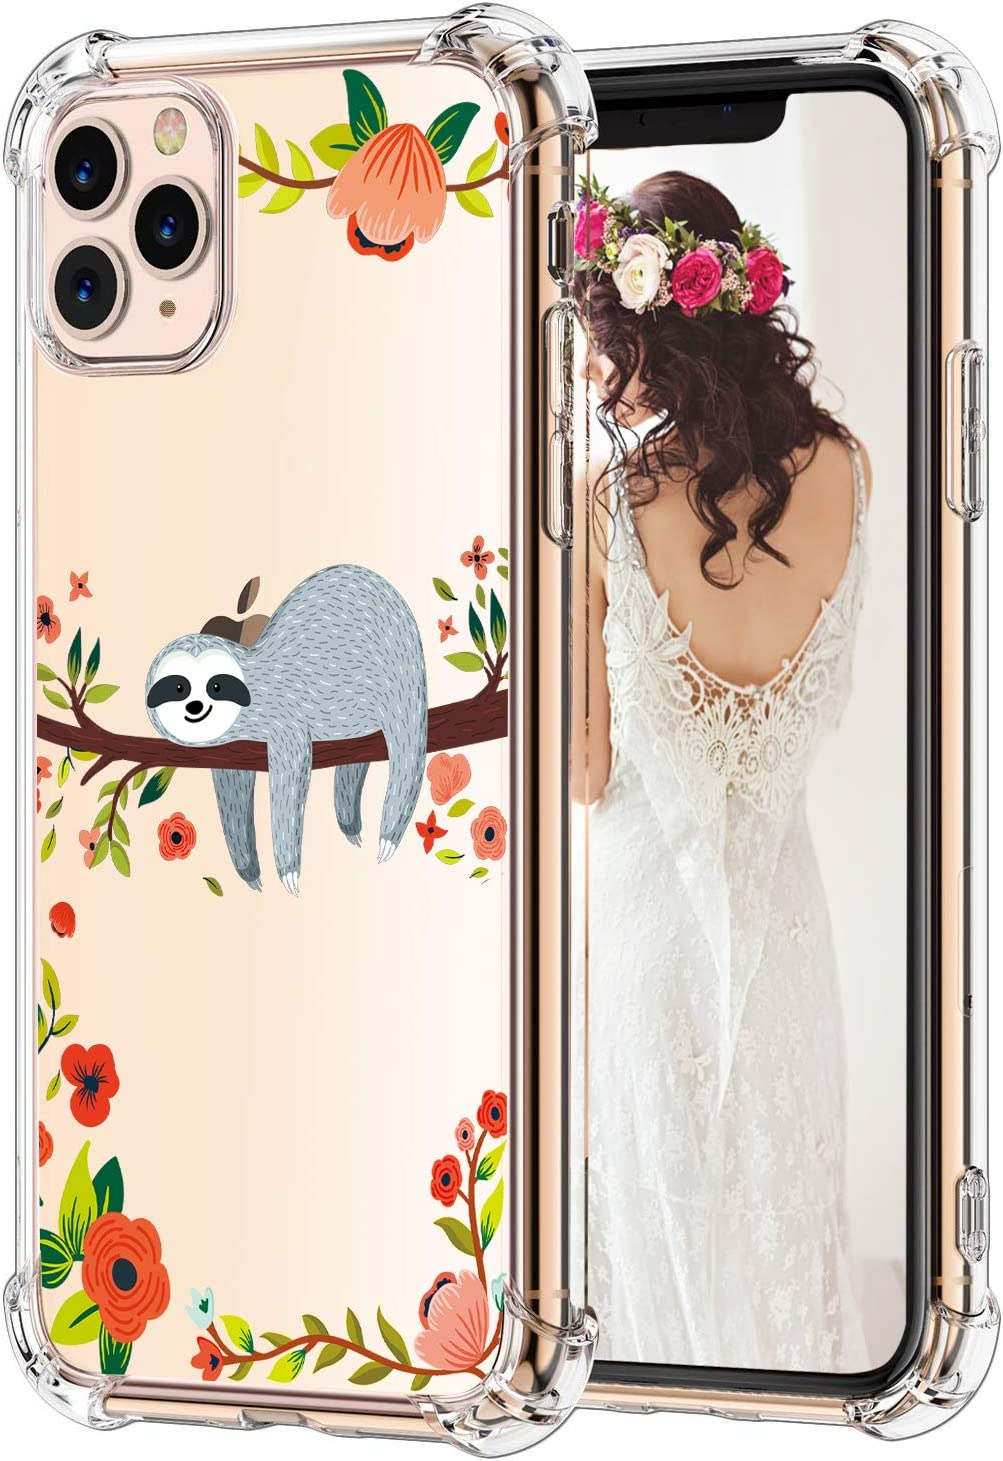 Free Amazon Promo Code 2020 for Clear iPhone 11 Pro Max Sloth Case